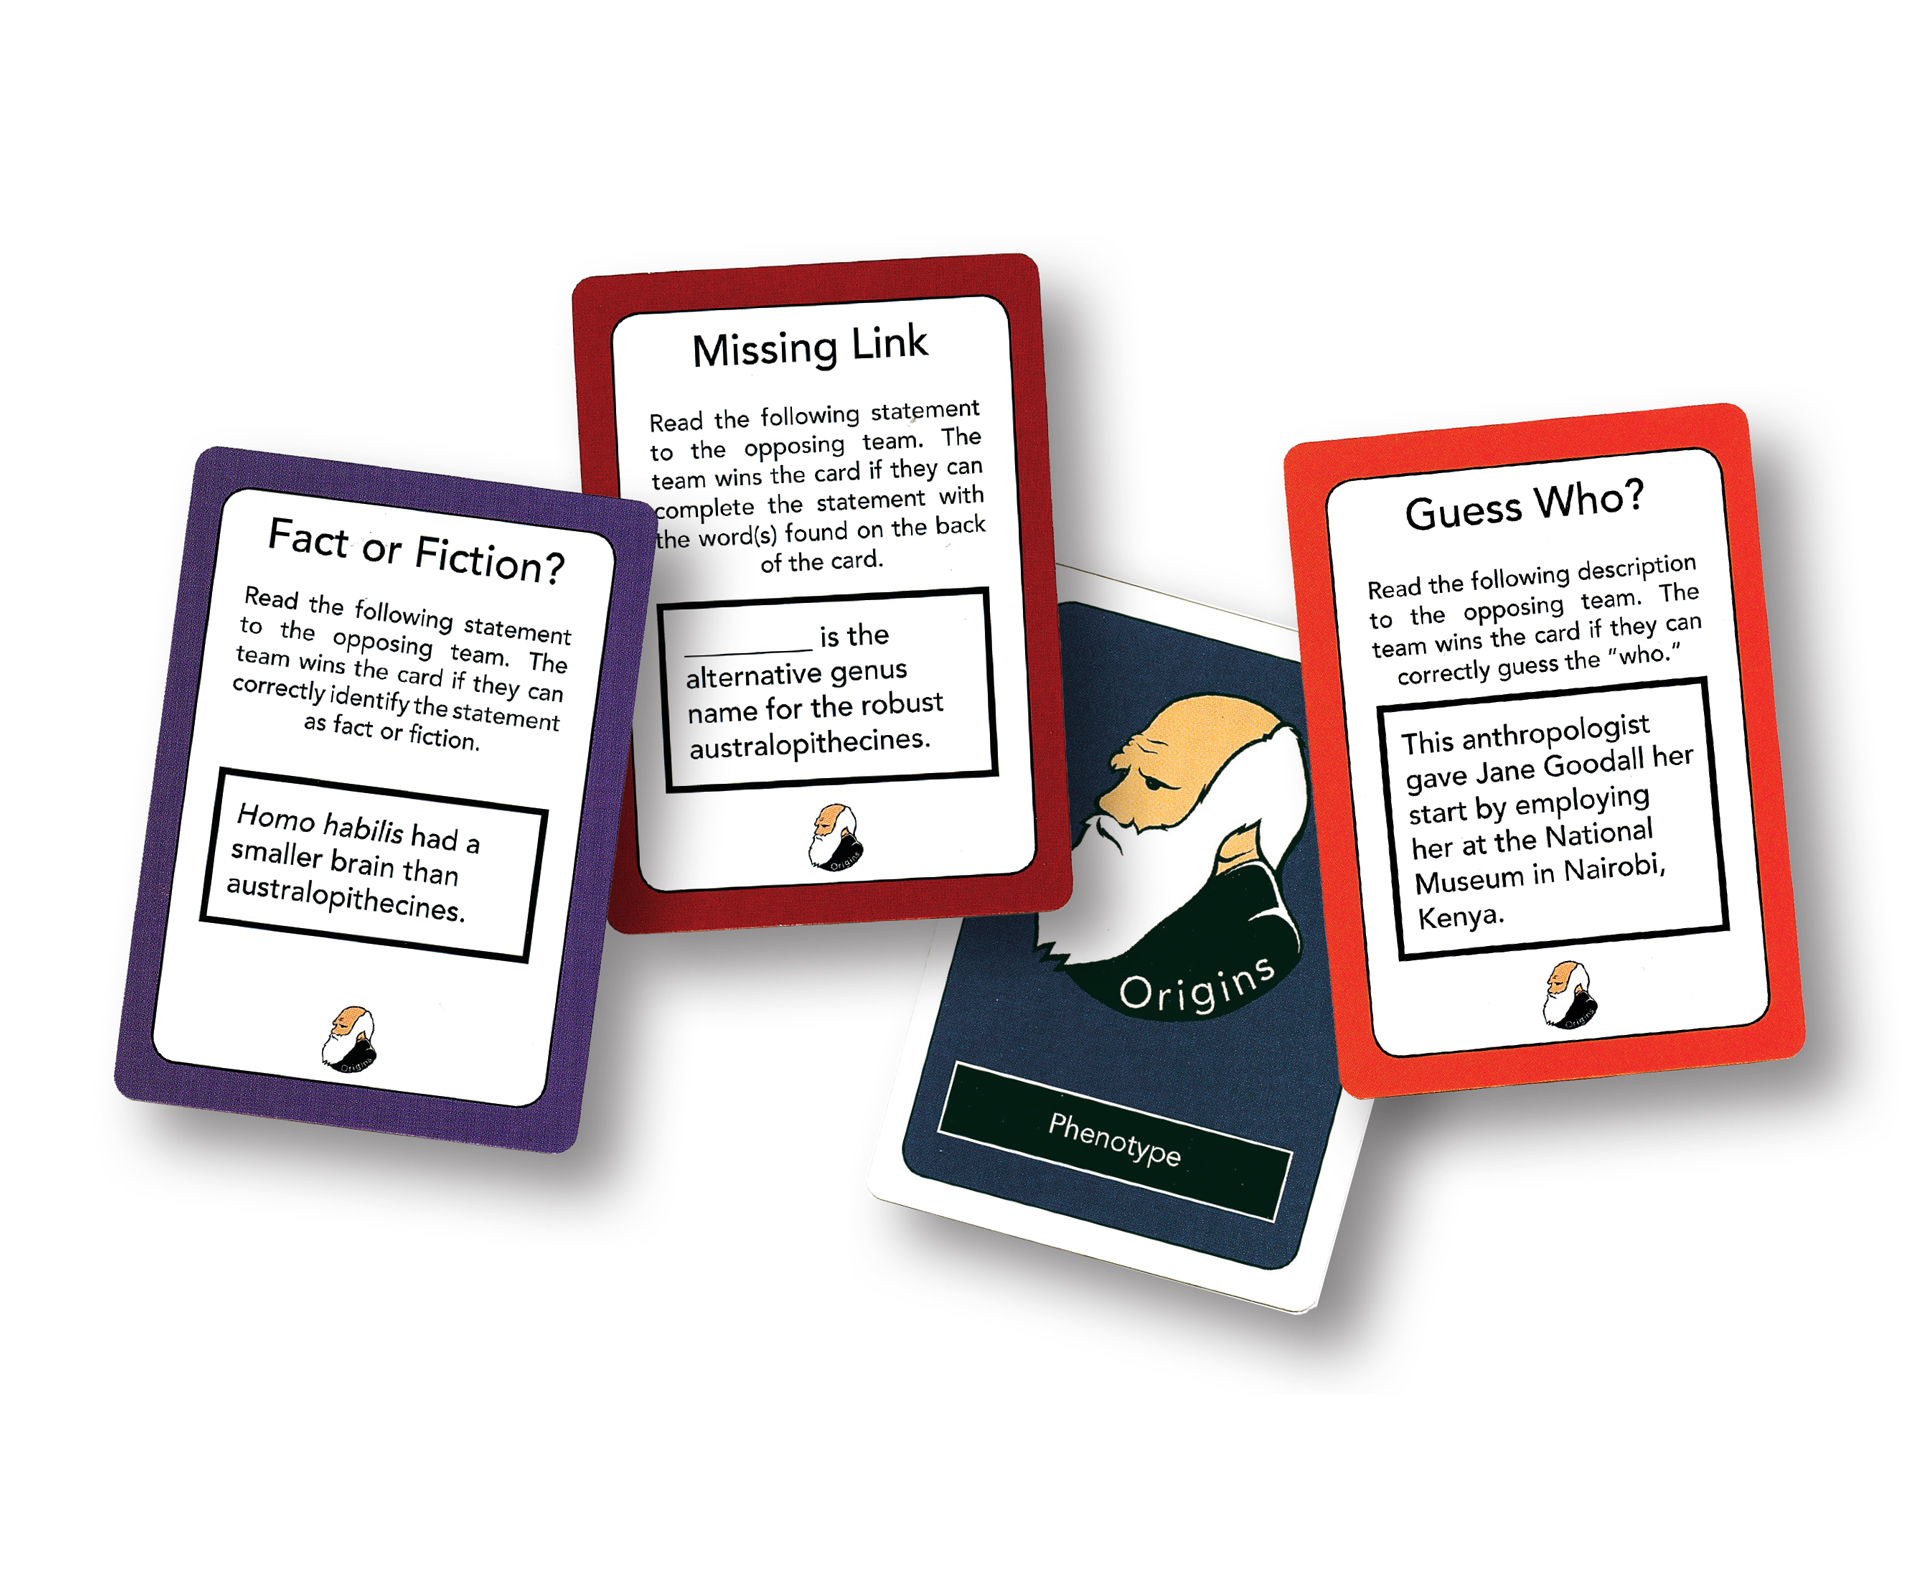 Evolution: The Card Game